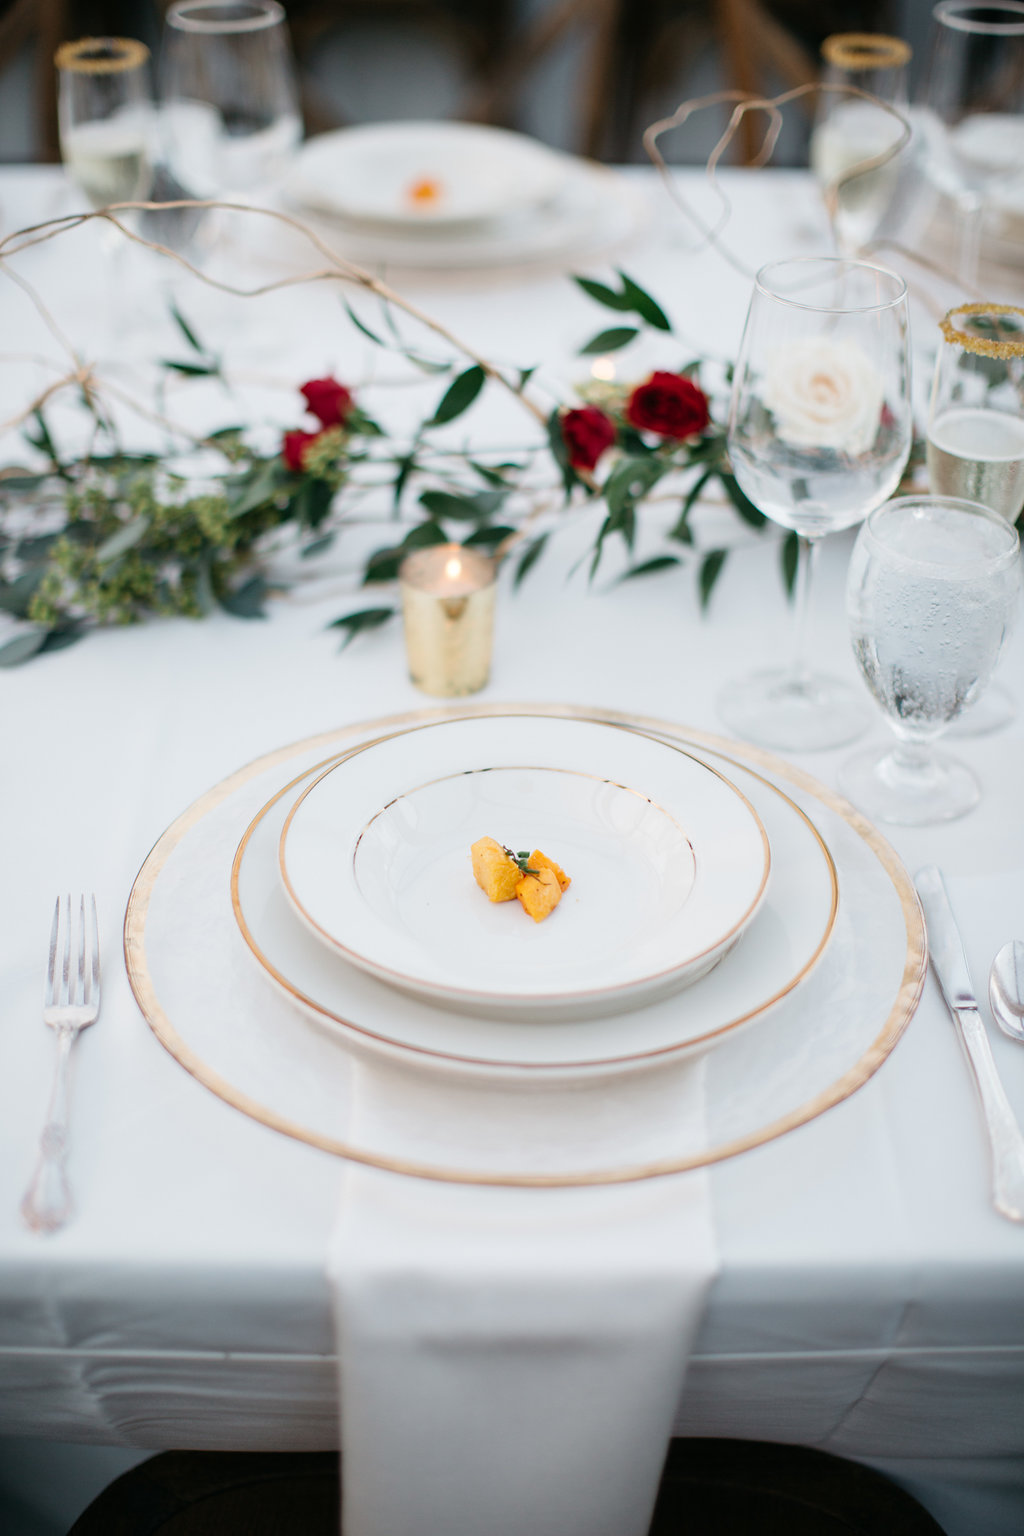 Gold rimmed dishware to complete the holiday themed wedding reception